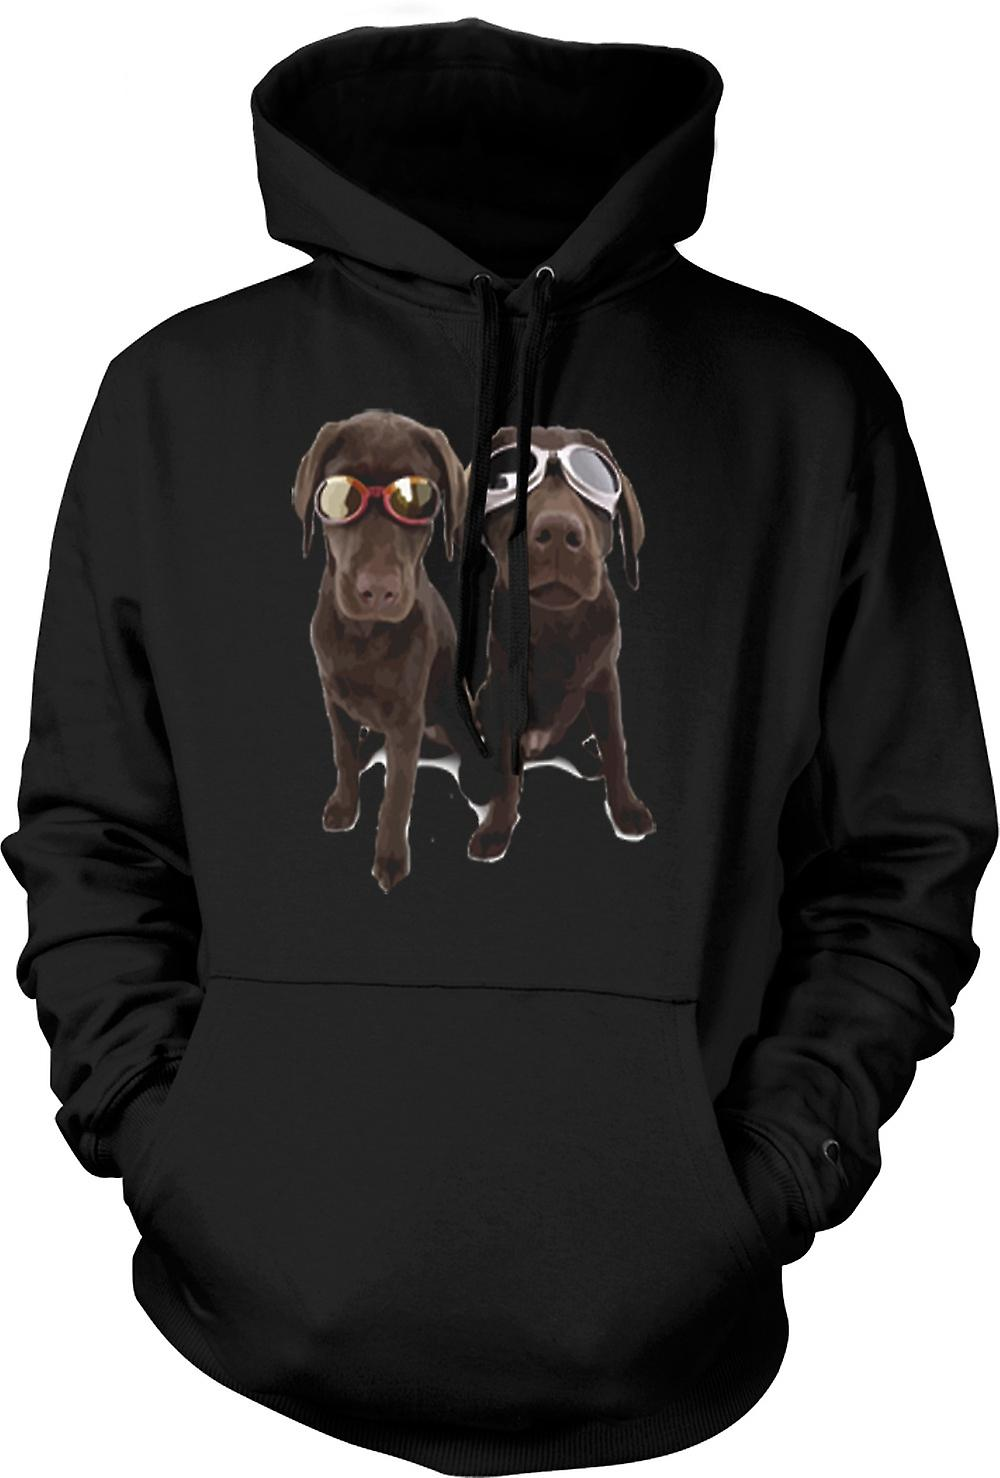 Mens Hoodie - Cool Black Labradors With Sunglasses